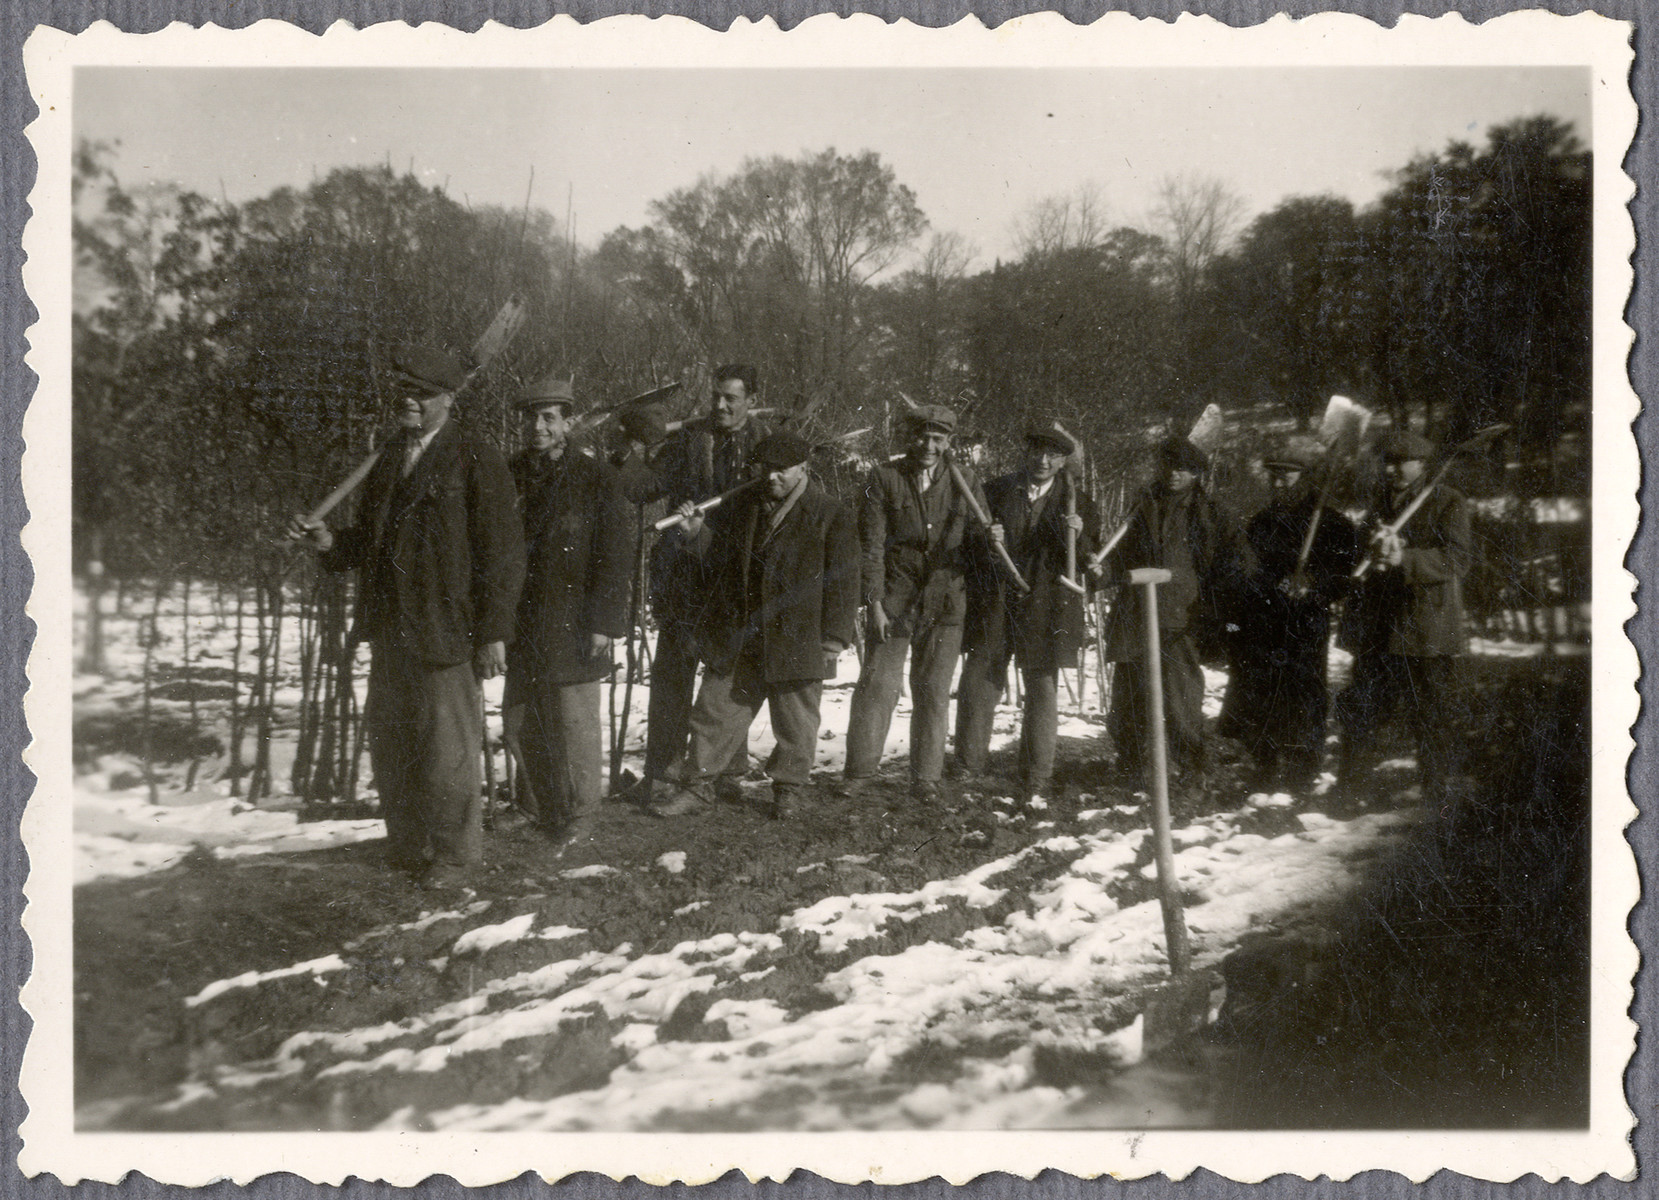 Jewish workers from the Lipa farm labor camp line up with their shovels in Cervene Pecky where they were allowed to work for a week in the spring of 1942.